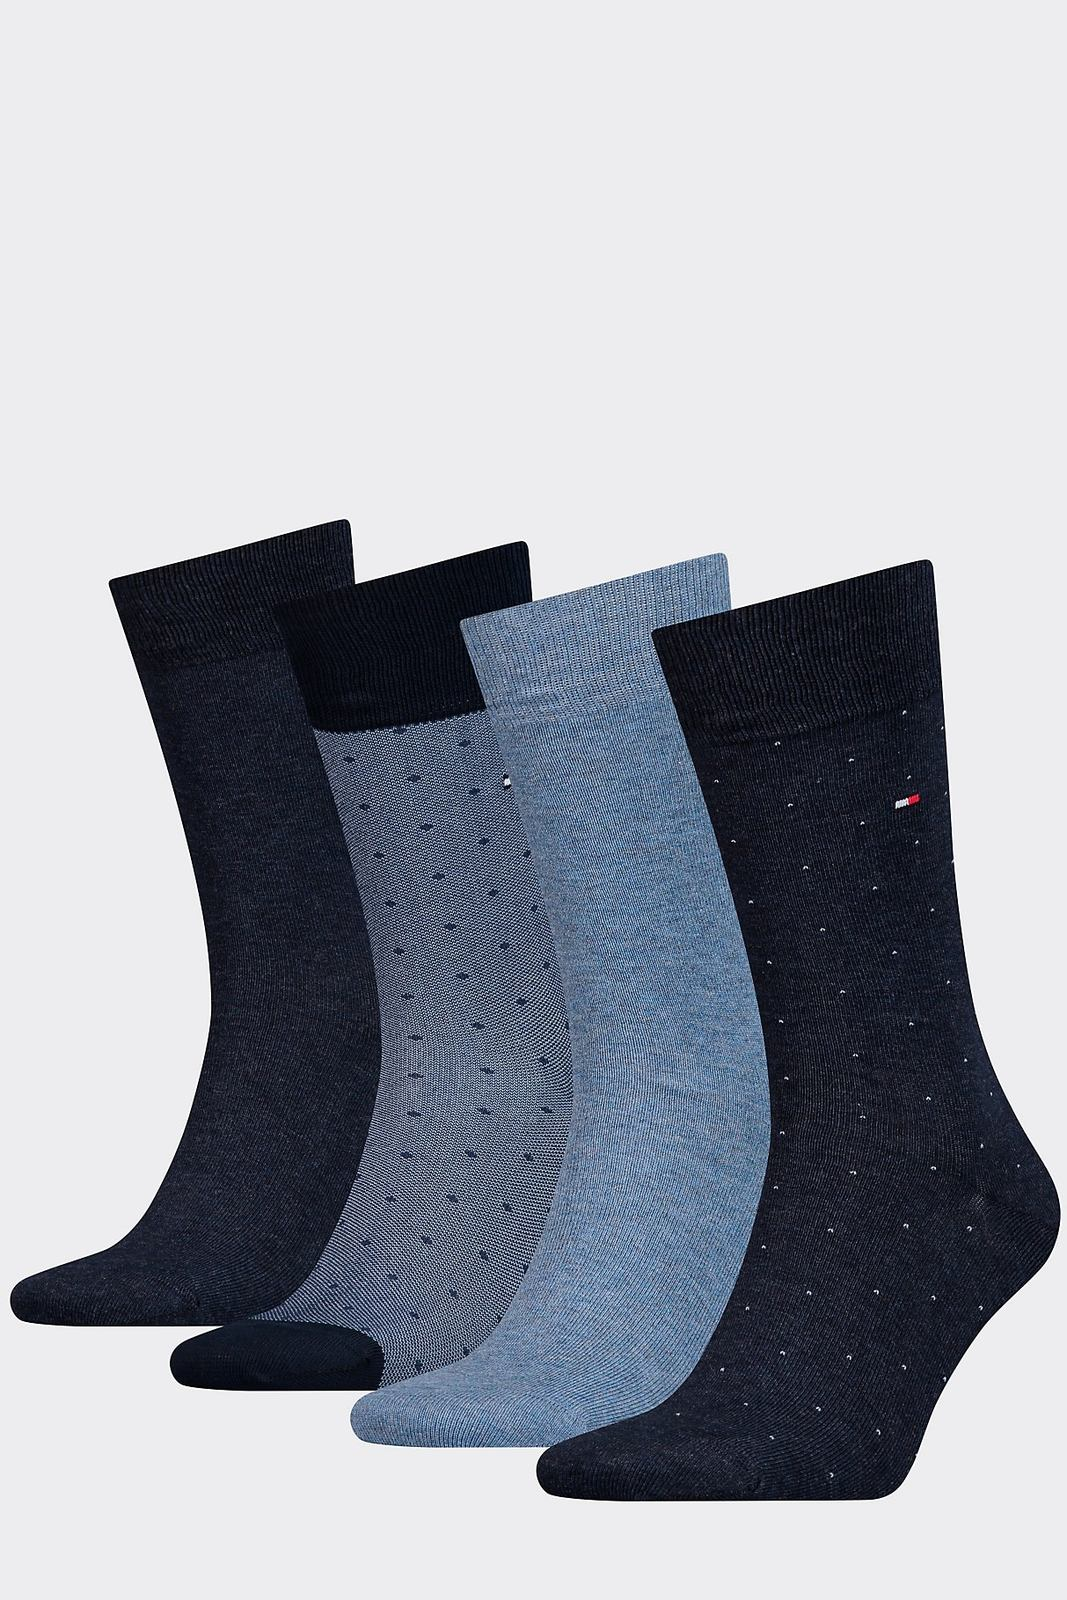 Tommy Hillfiger Mens 6 Pairs Mixed Socks Gift Boxed